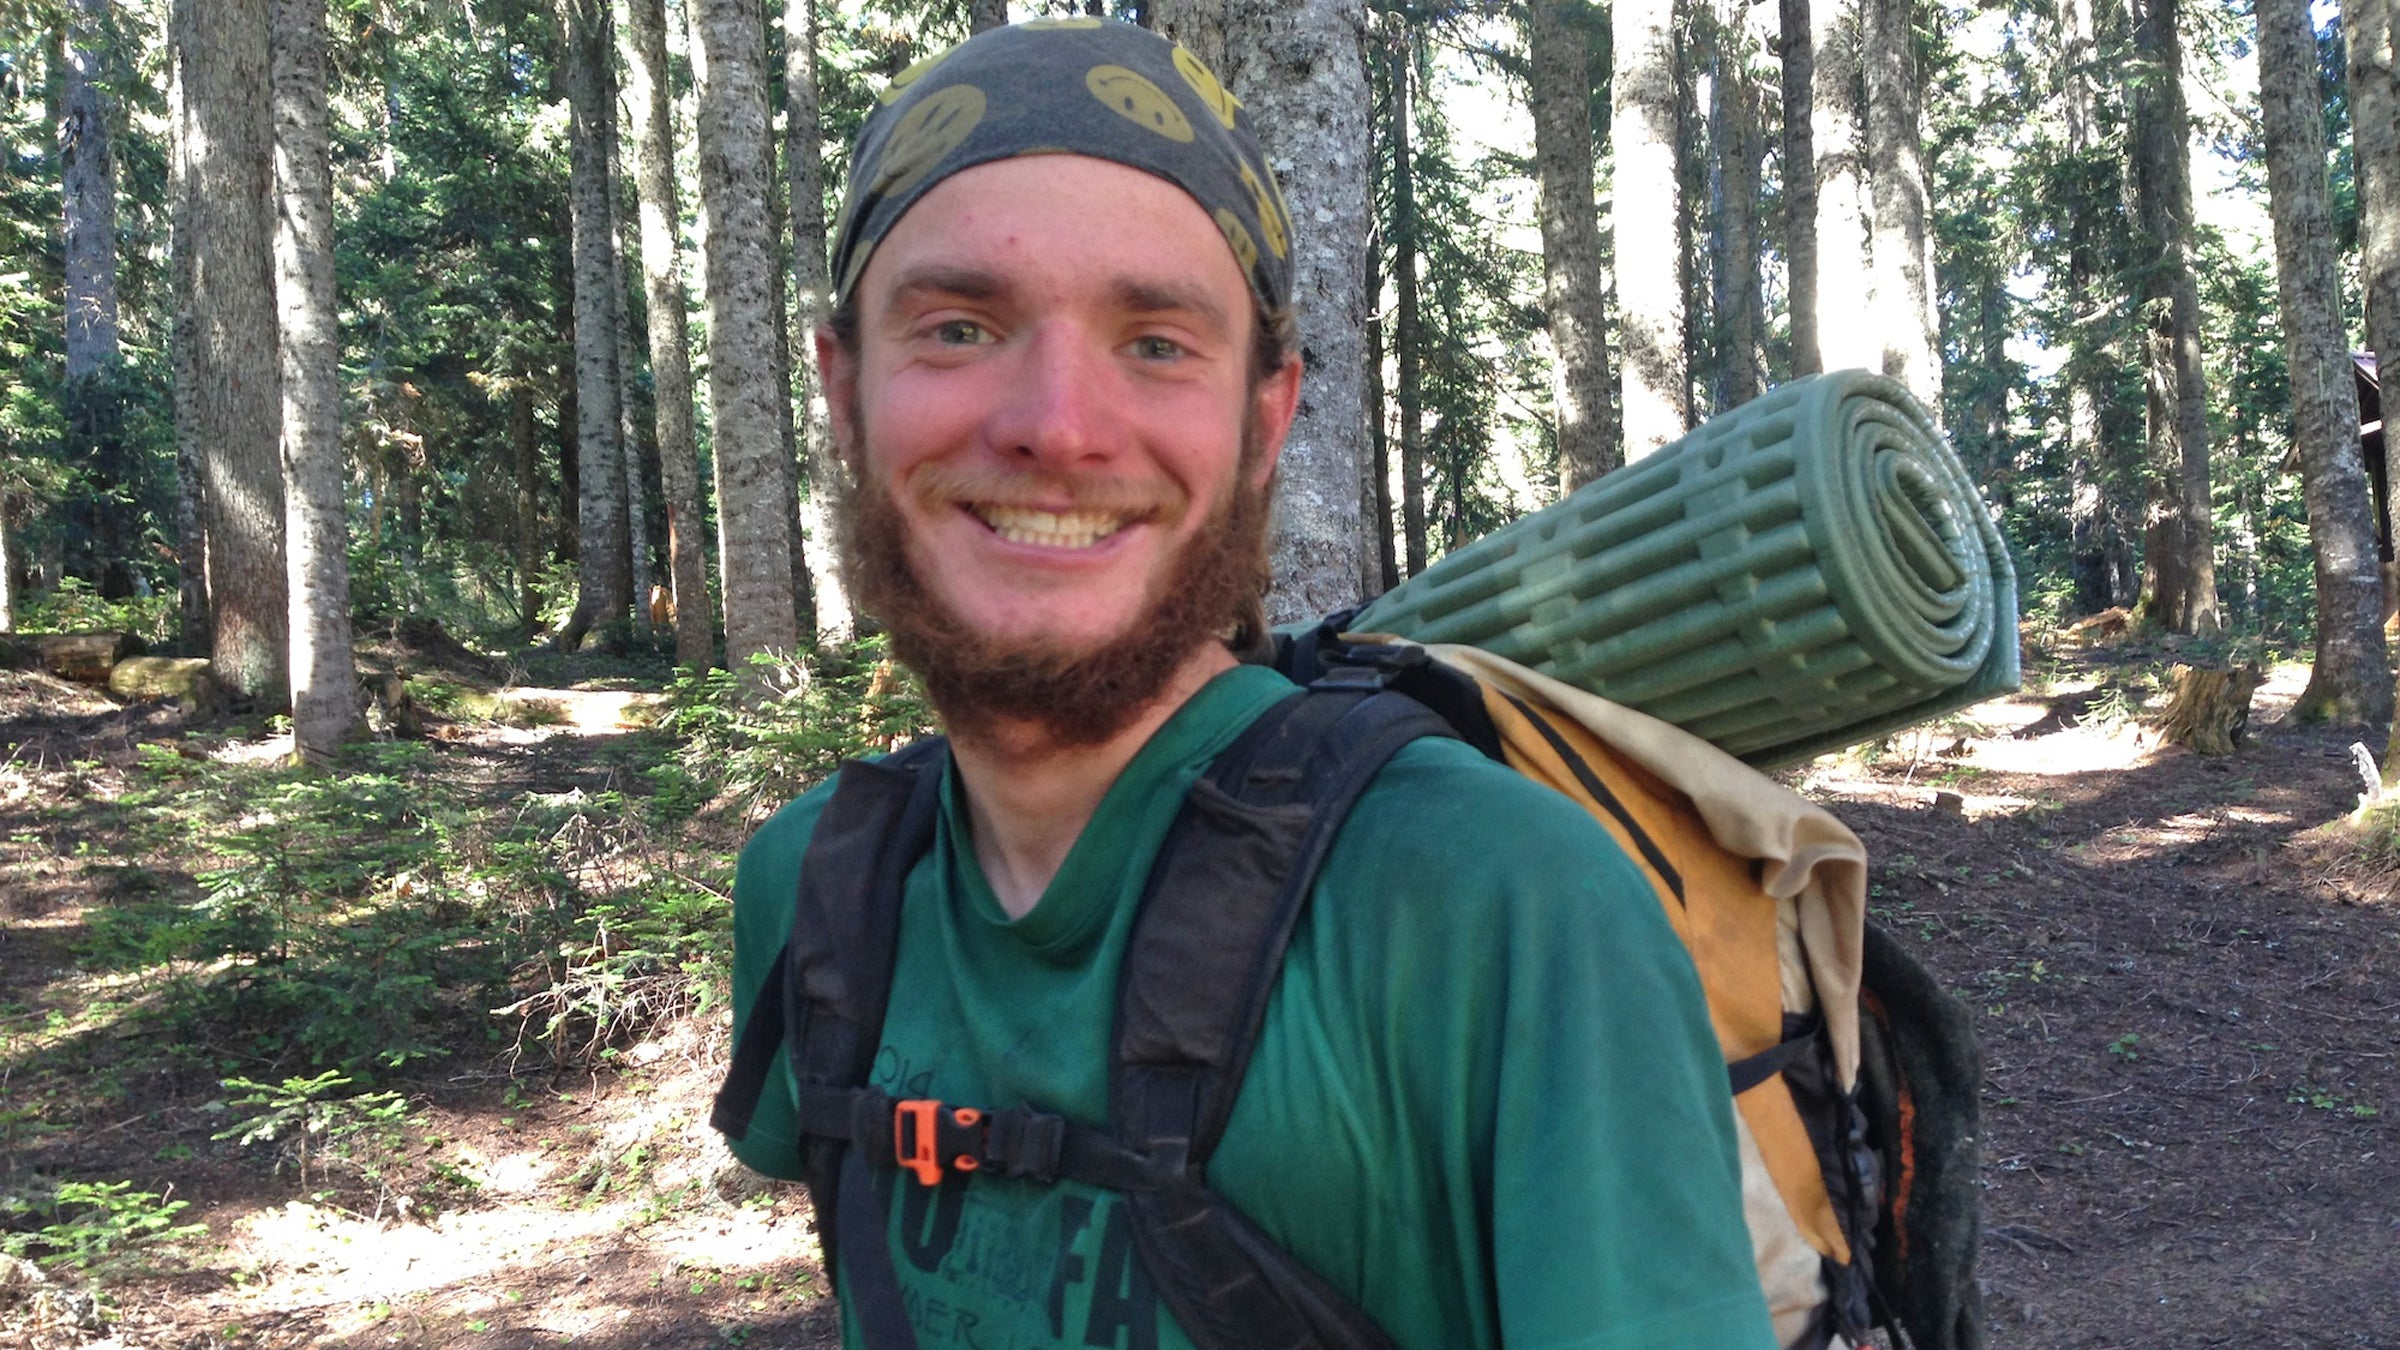 """Eric Anderson, 25  Trail Name: Dart Wisconsin """"It doesn't matter where I am, I can be myself and do my thing the same in the woods, or in society, anywhere. Previously, my self-image was contextual, defined by studies or work. But now I realize it doesn't matter where I am or what I'm doing, I am a relative constant in and of myself. The PCT is a momentum break; in the real world, you're caught up with the next event, the next get together with friends, the next work. Getting away from all of that and just existing for a little while helps clarify things. It lets you know what you really want to do."""""""